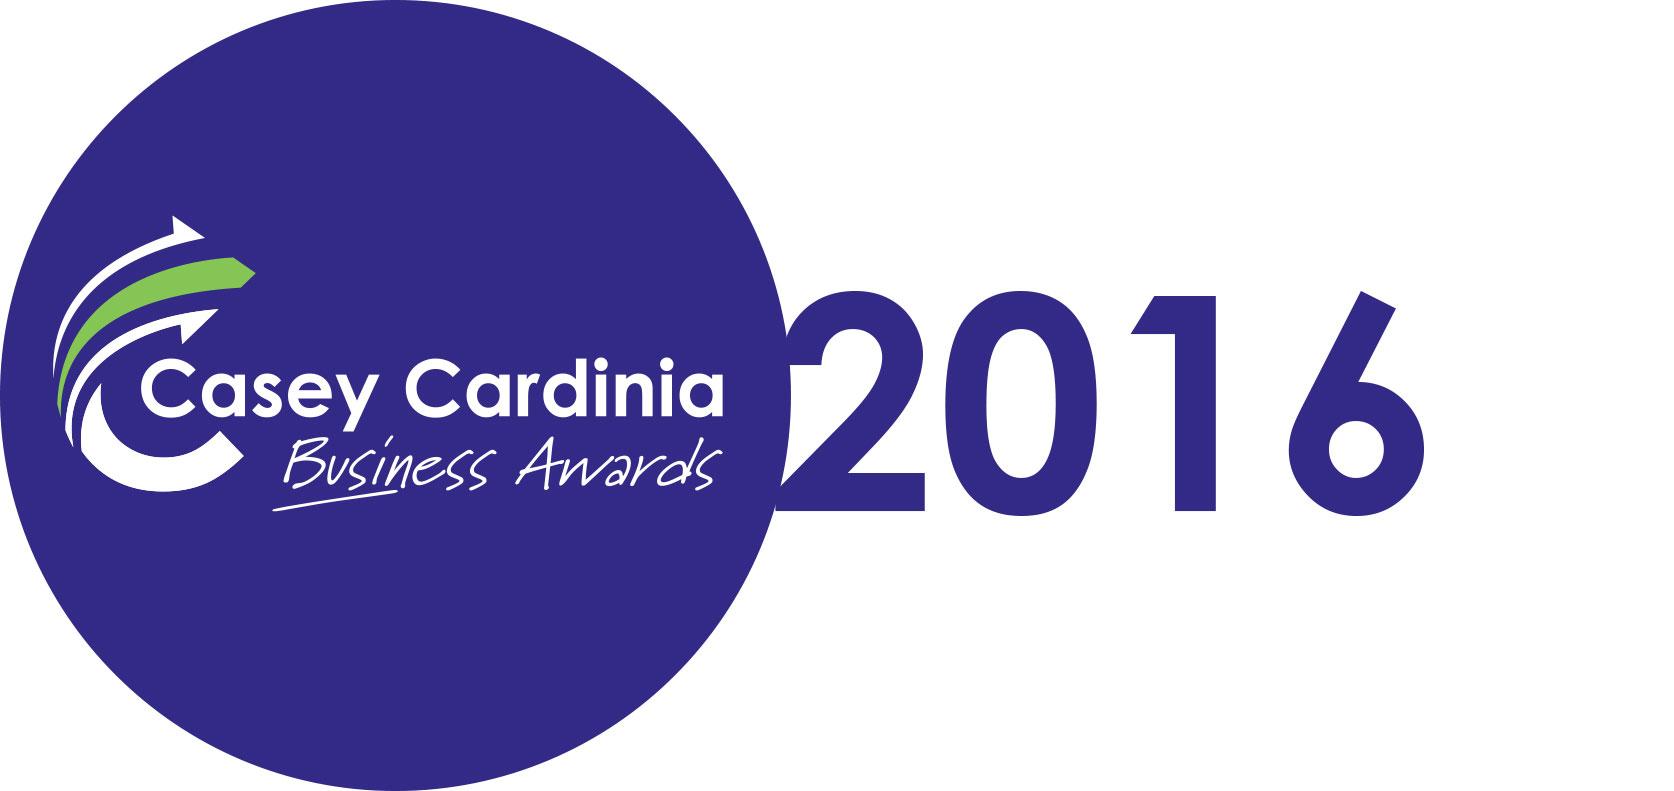 Casey Cardinia Business Awards 2016